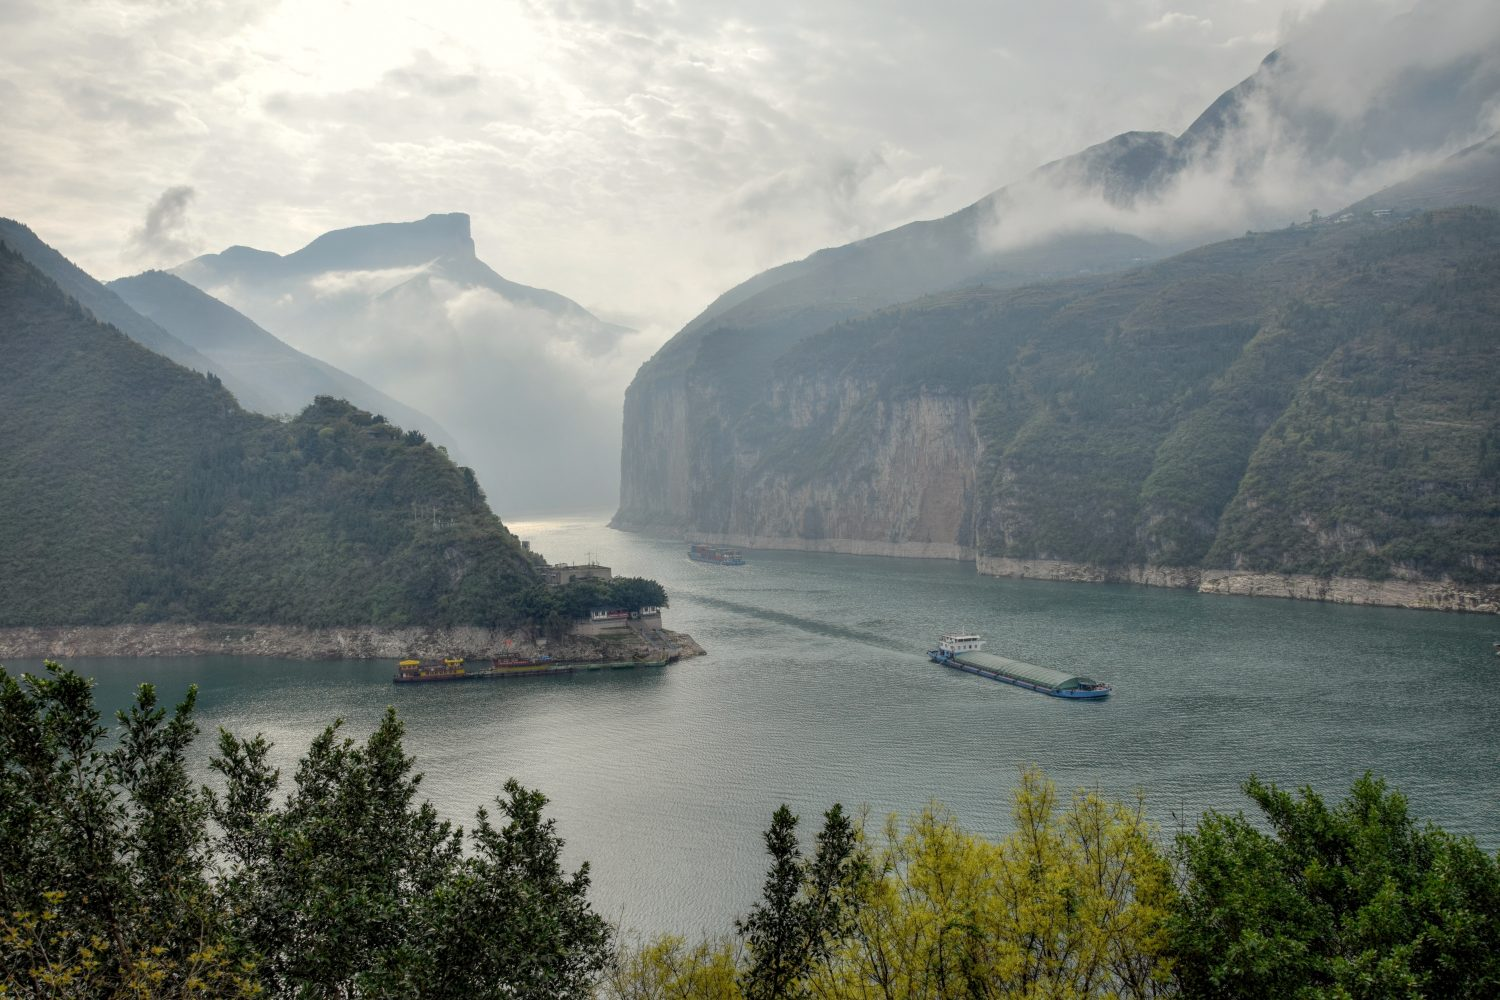 Picture of the Yangtze River in China - Visit China